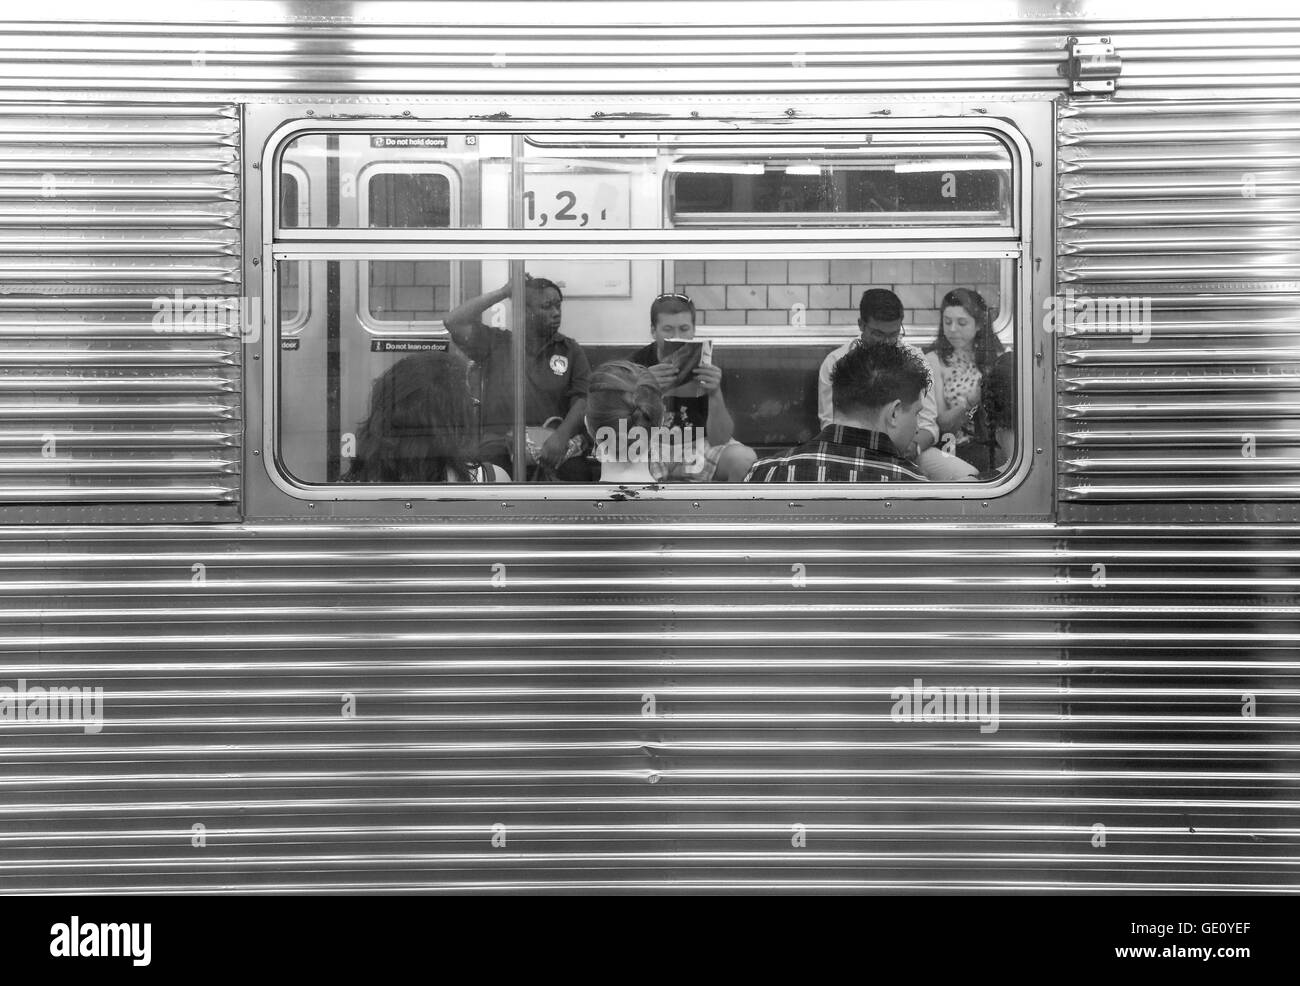 People sitting in a subway car seen through window on station Jay Street MetroTech. - Stock Image